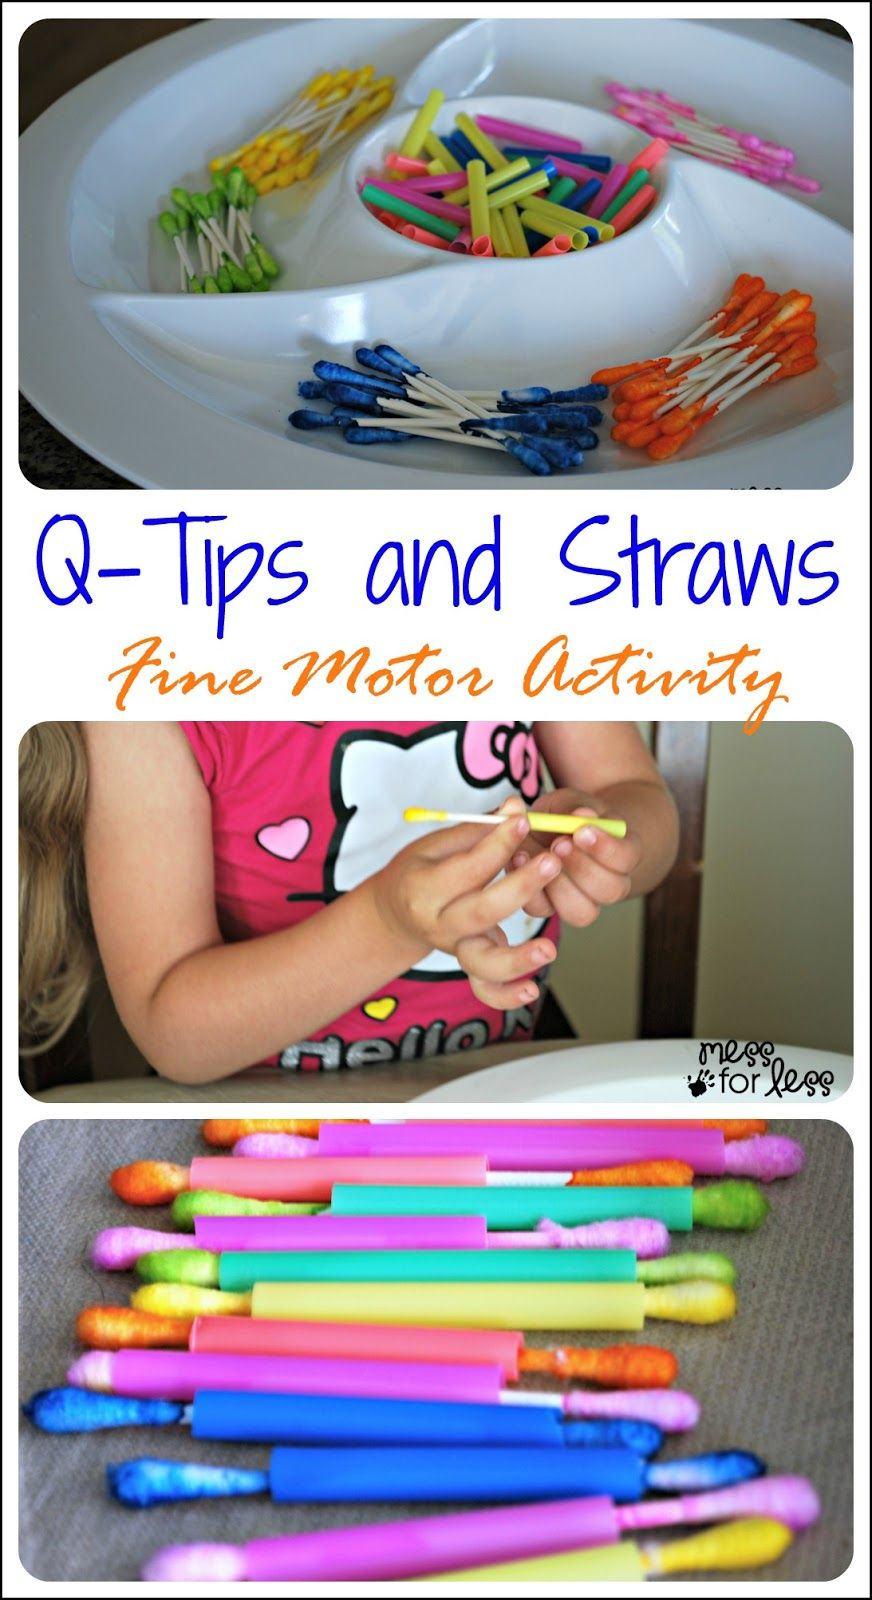 Q-Tips and Straws Activity--A great way to help little hands strengthen fine motor skills and work on colors at the same time.